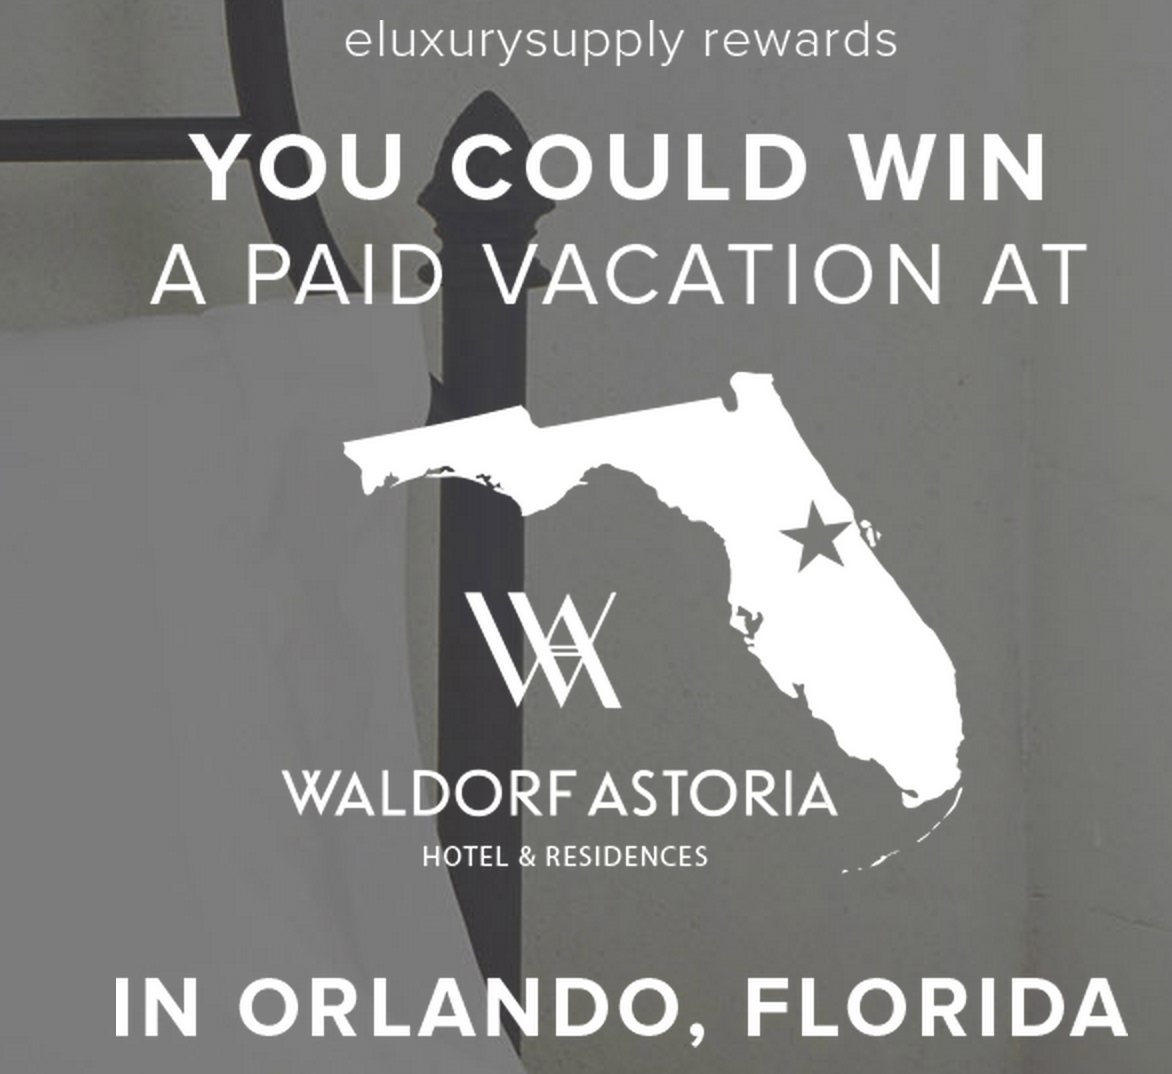 eLuxurySupply Orlando Vacation Giveaway. Ends 4/17